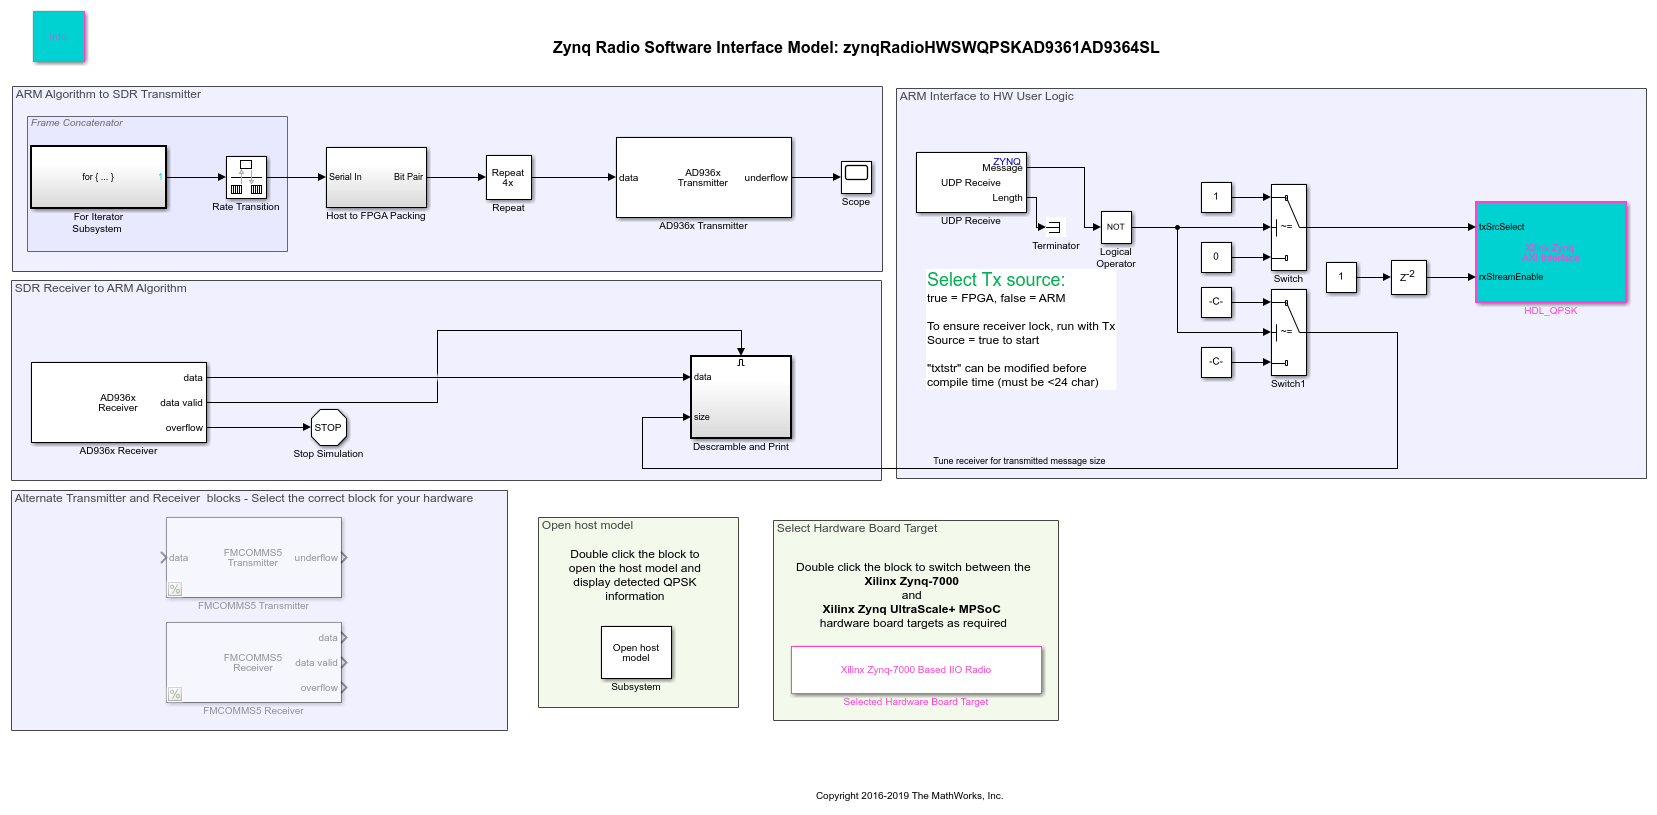 qpsk transmitter and receiver block diagram 1985 peterbilt 359 wiring hw sw co design transmit receive using analog devices in this model the switch has been replaced by a udp which will be able to packets output source choice value